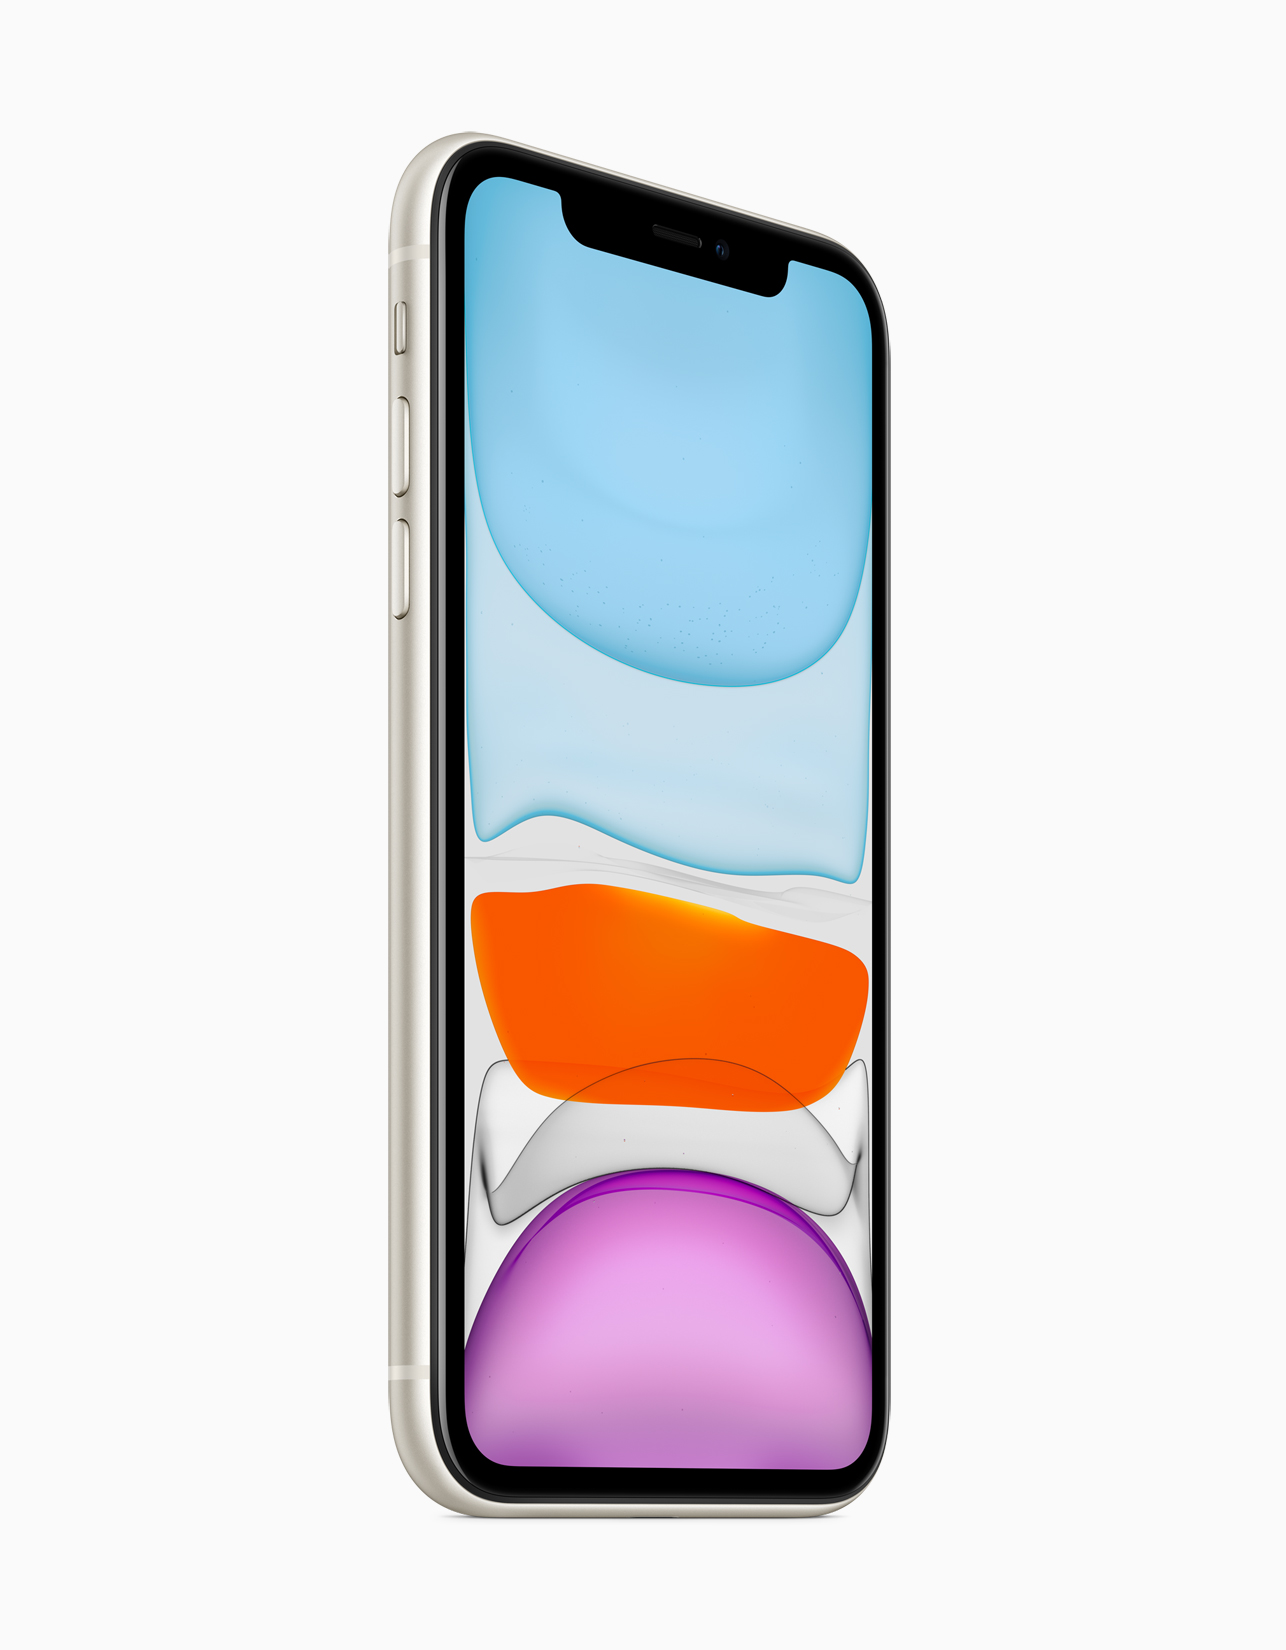 iphone 11 launched a13 bionic soc dual rear camera 4k front cam recording 6 color options